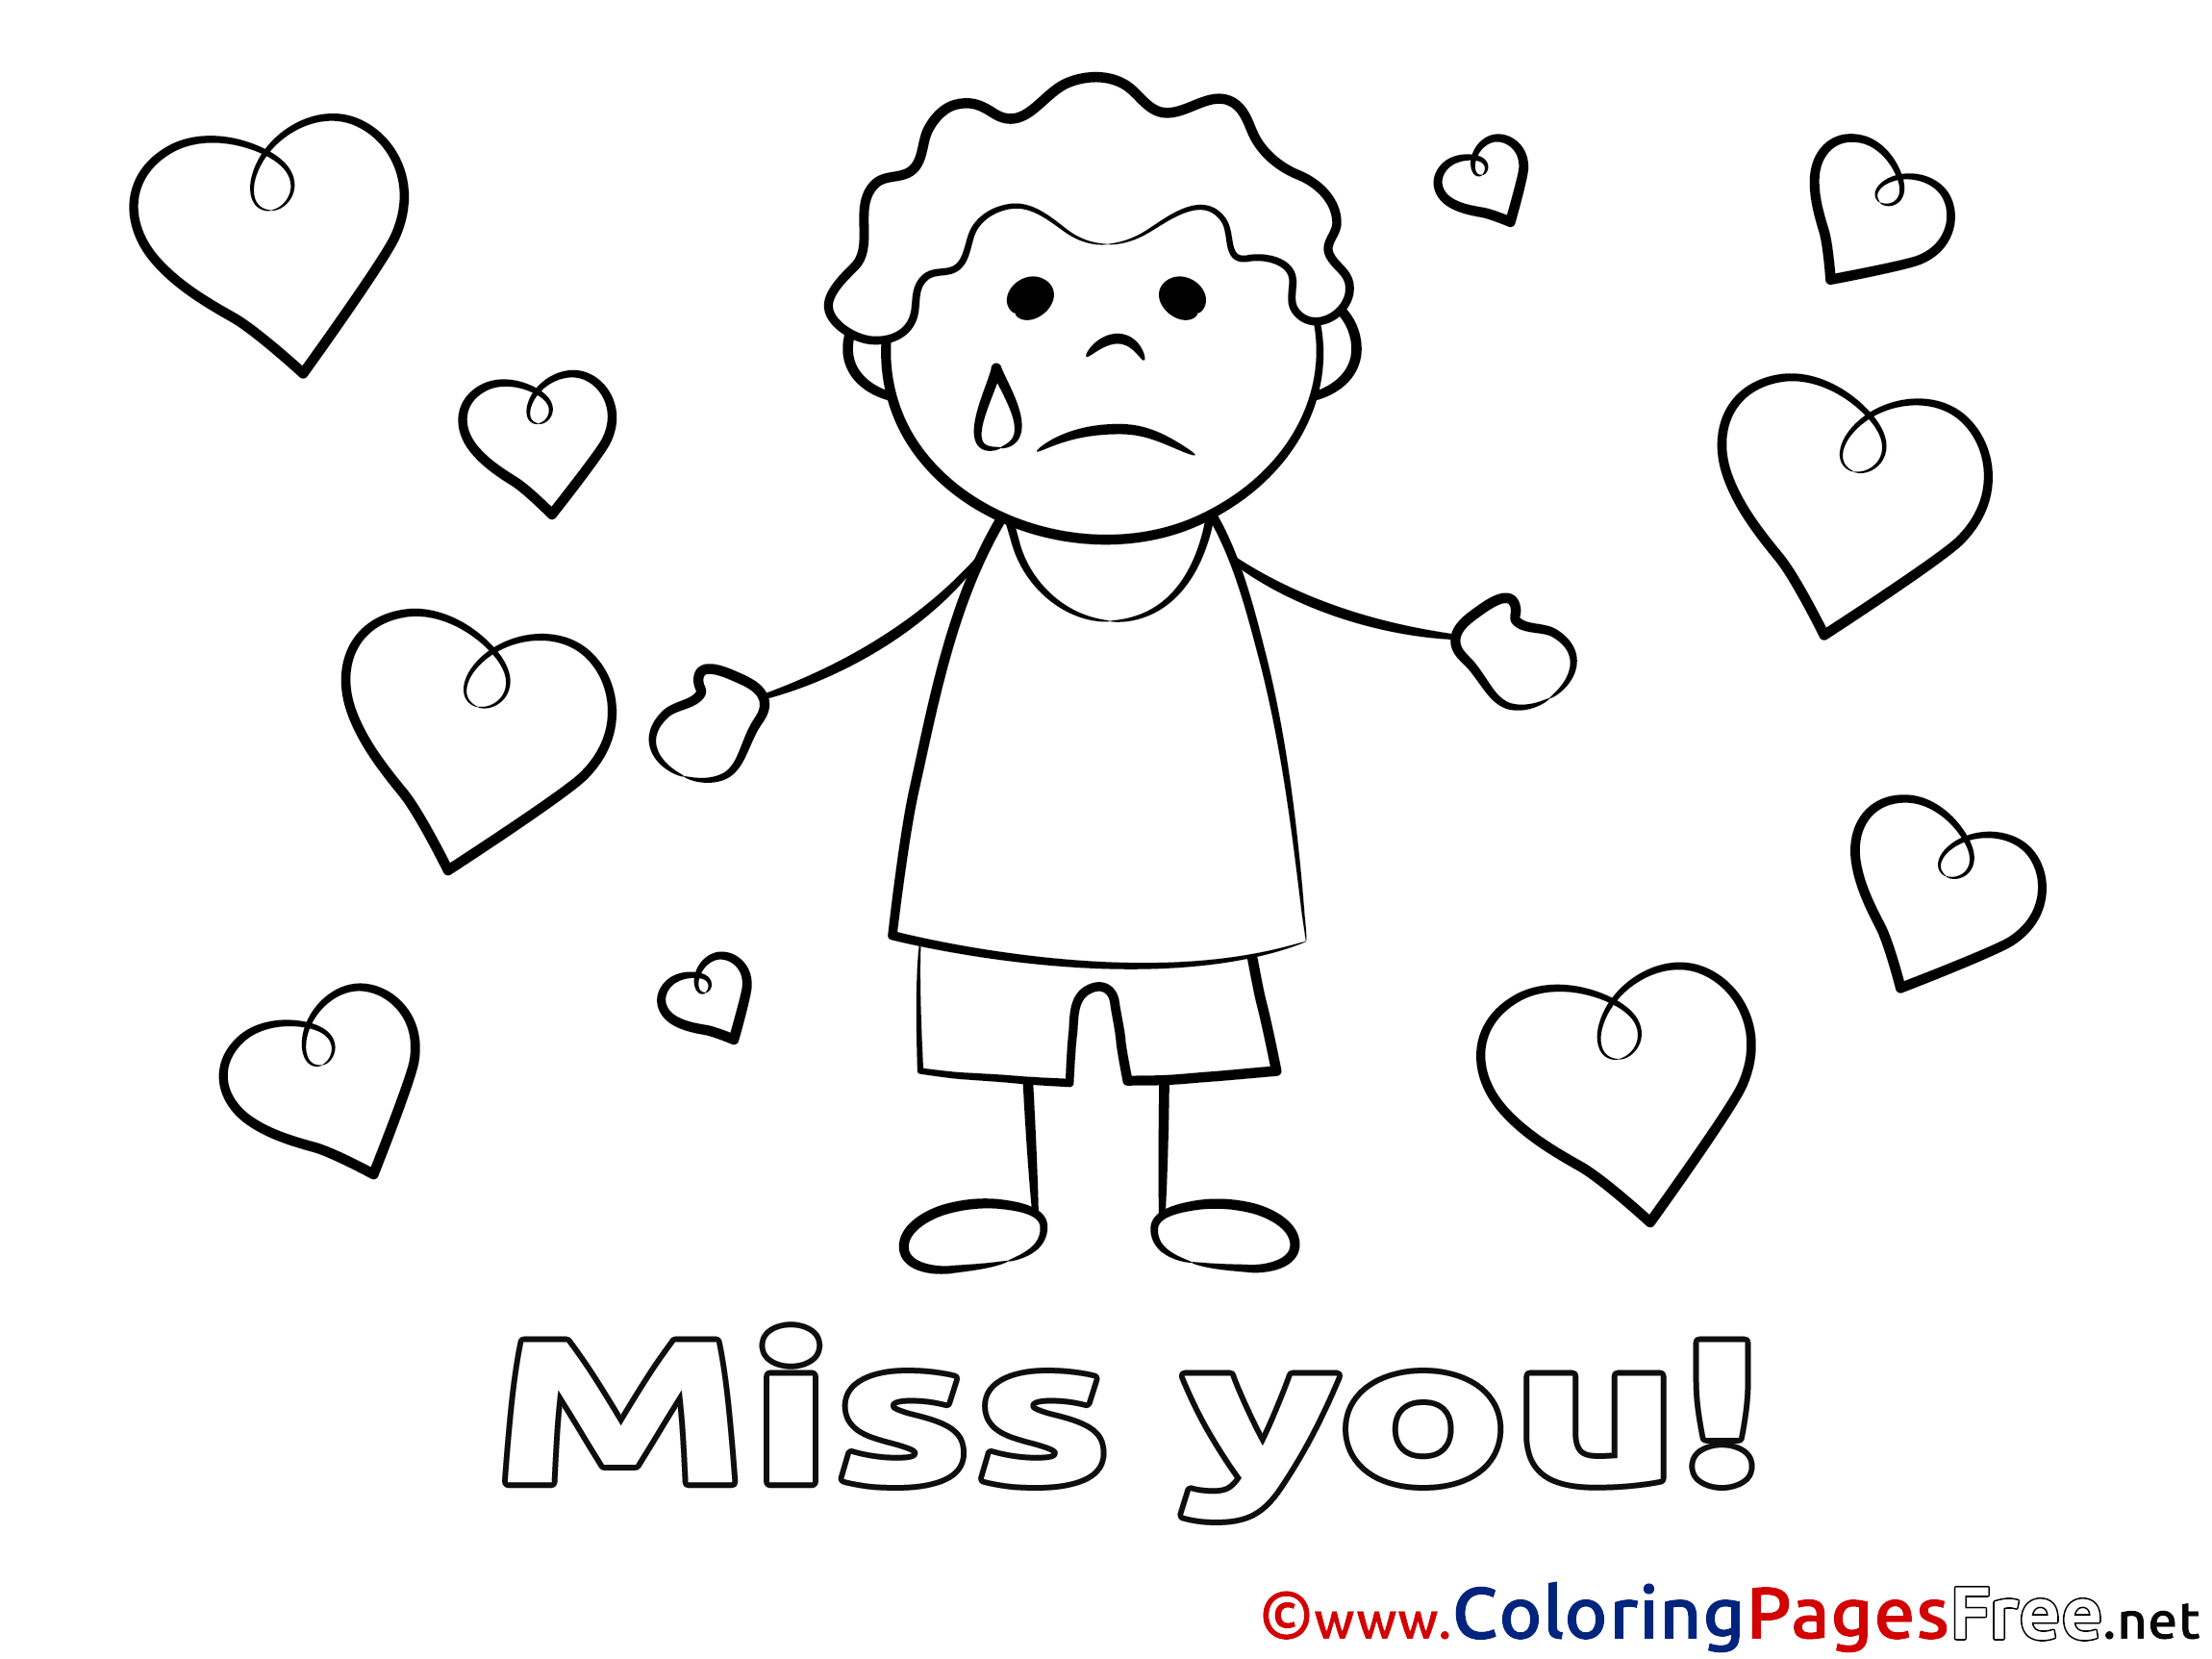 miss you coloring pages - boy kids miss you coloring pages